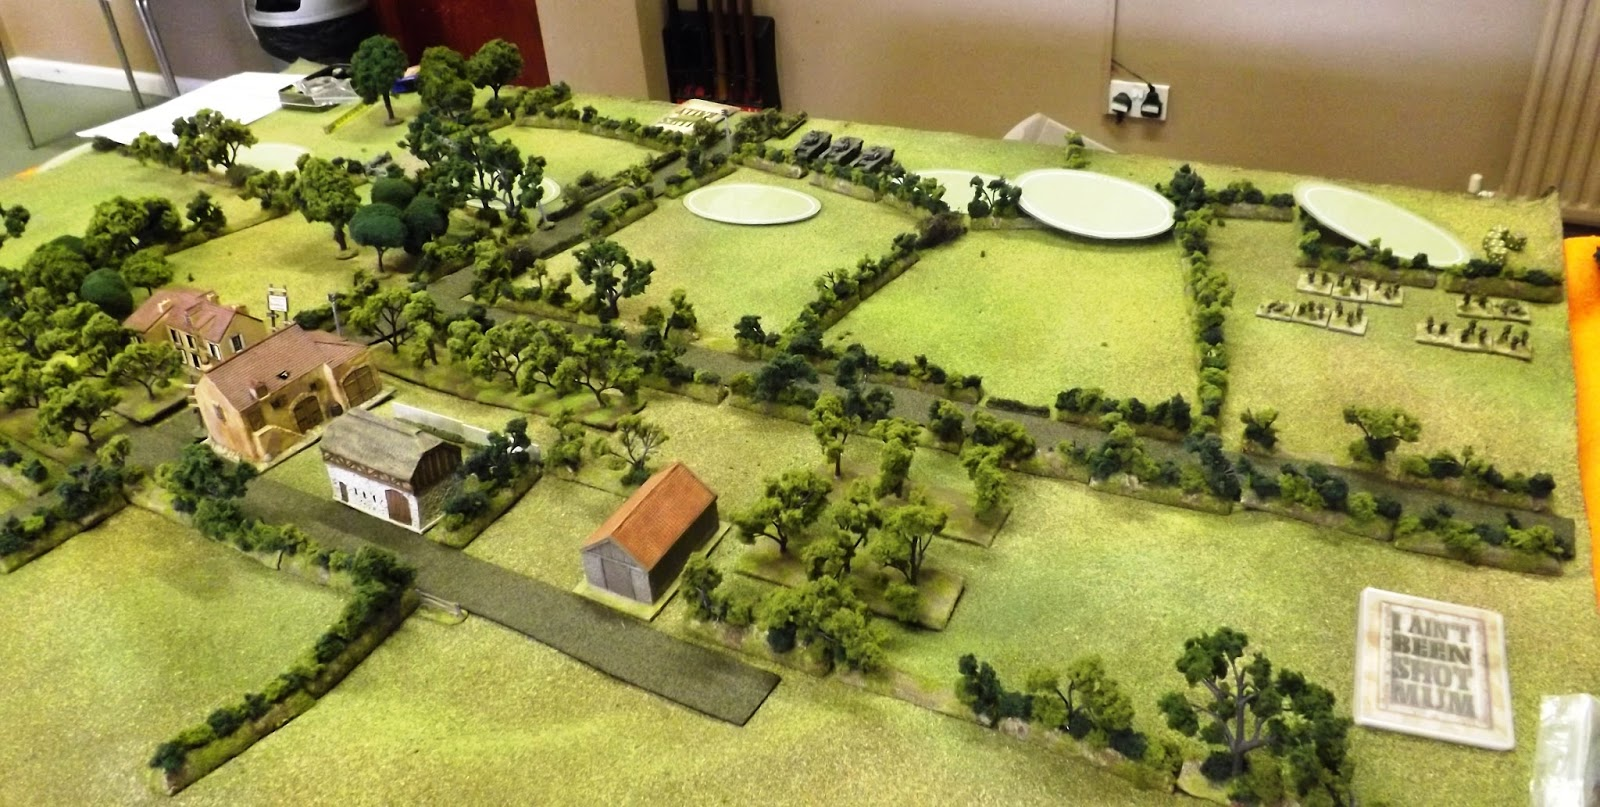 The lead British elements enter the table on blinds with the first platoons spotted by the German defenders visible